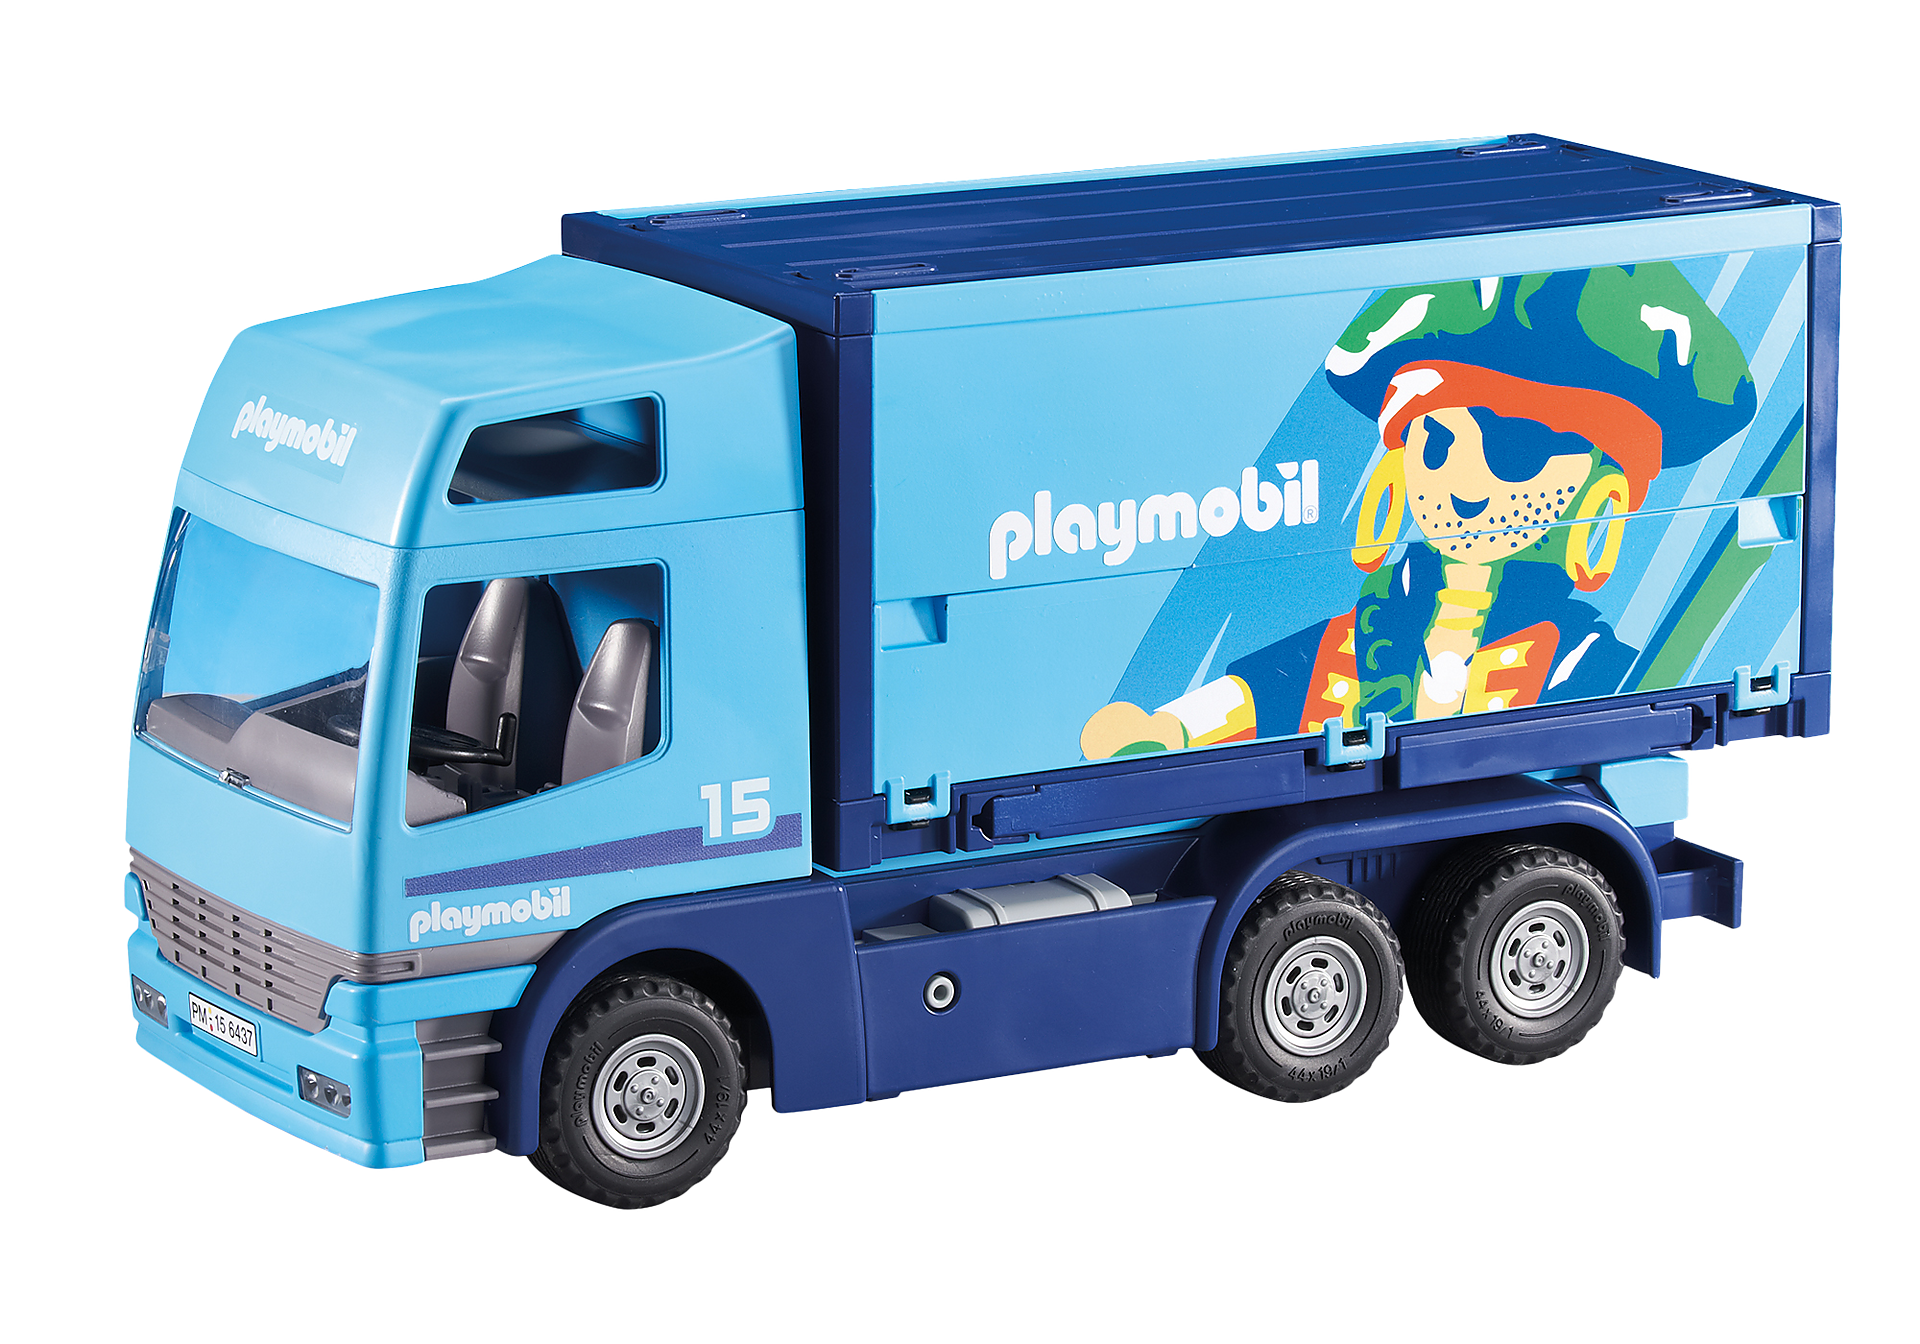 http://media.playmobil.com/i/playmobil/6437_product_detail/PLAYMOBIL-LKW